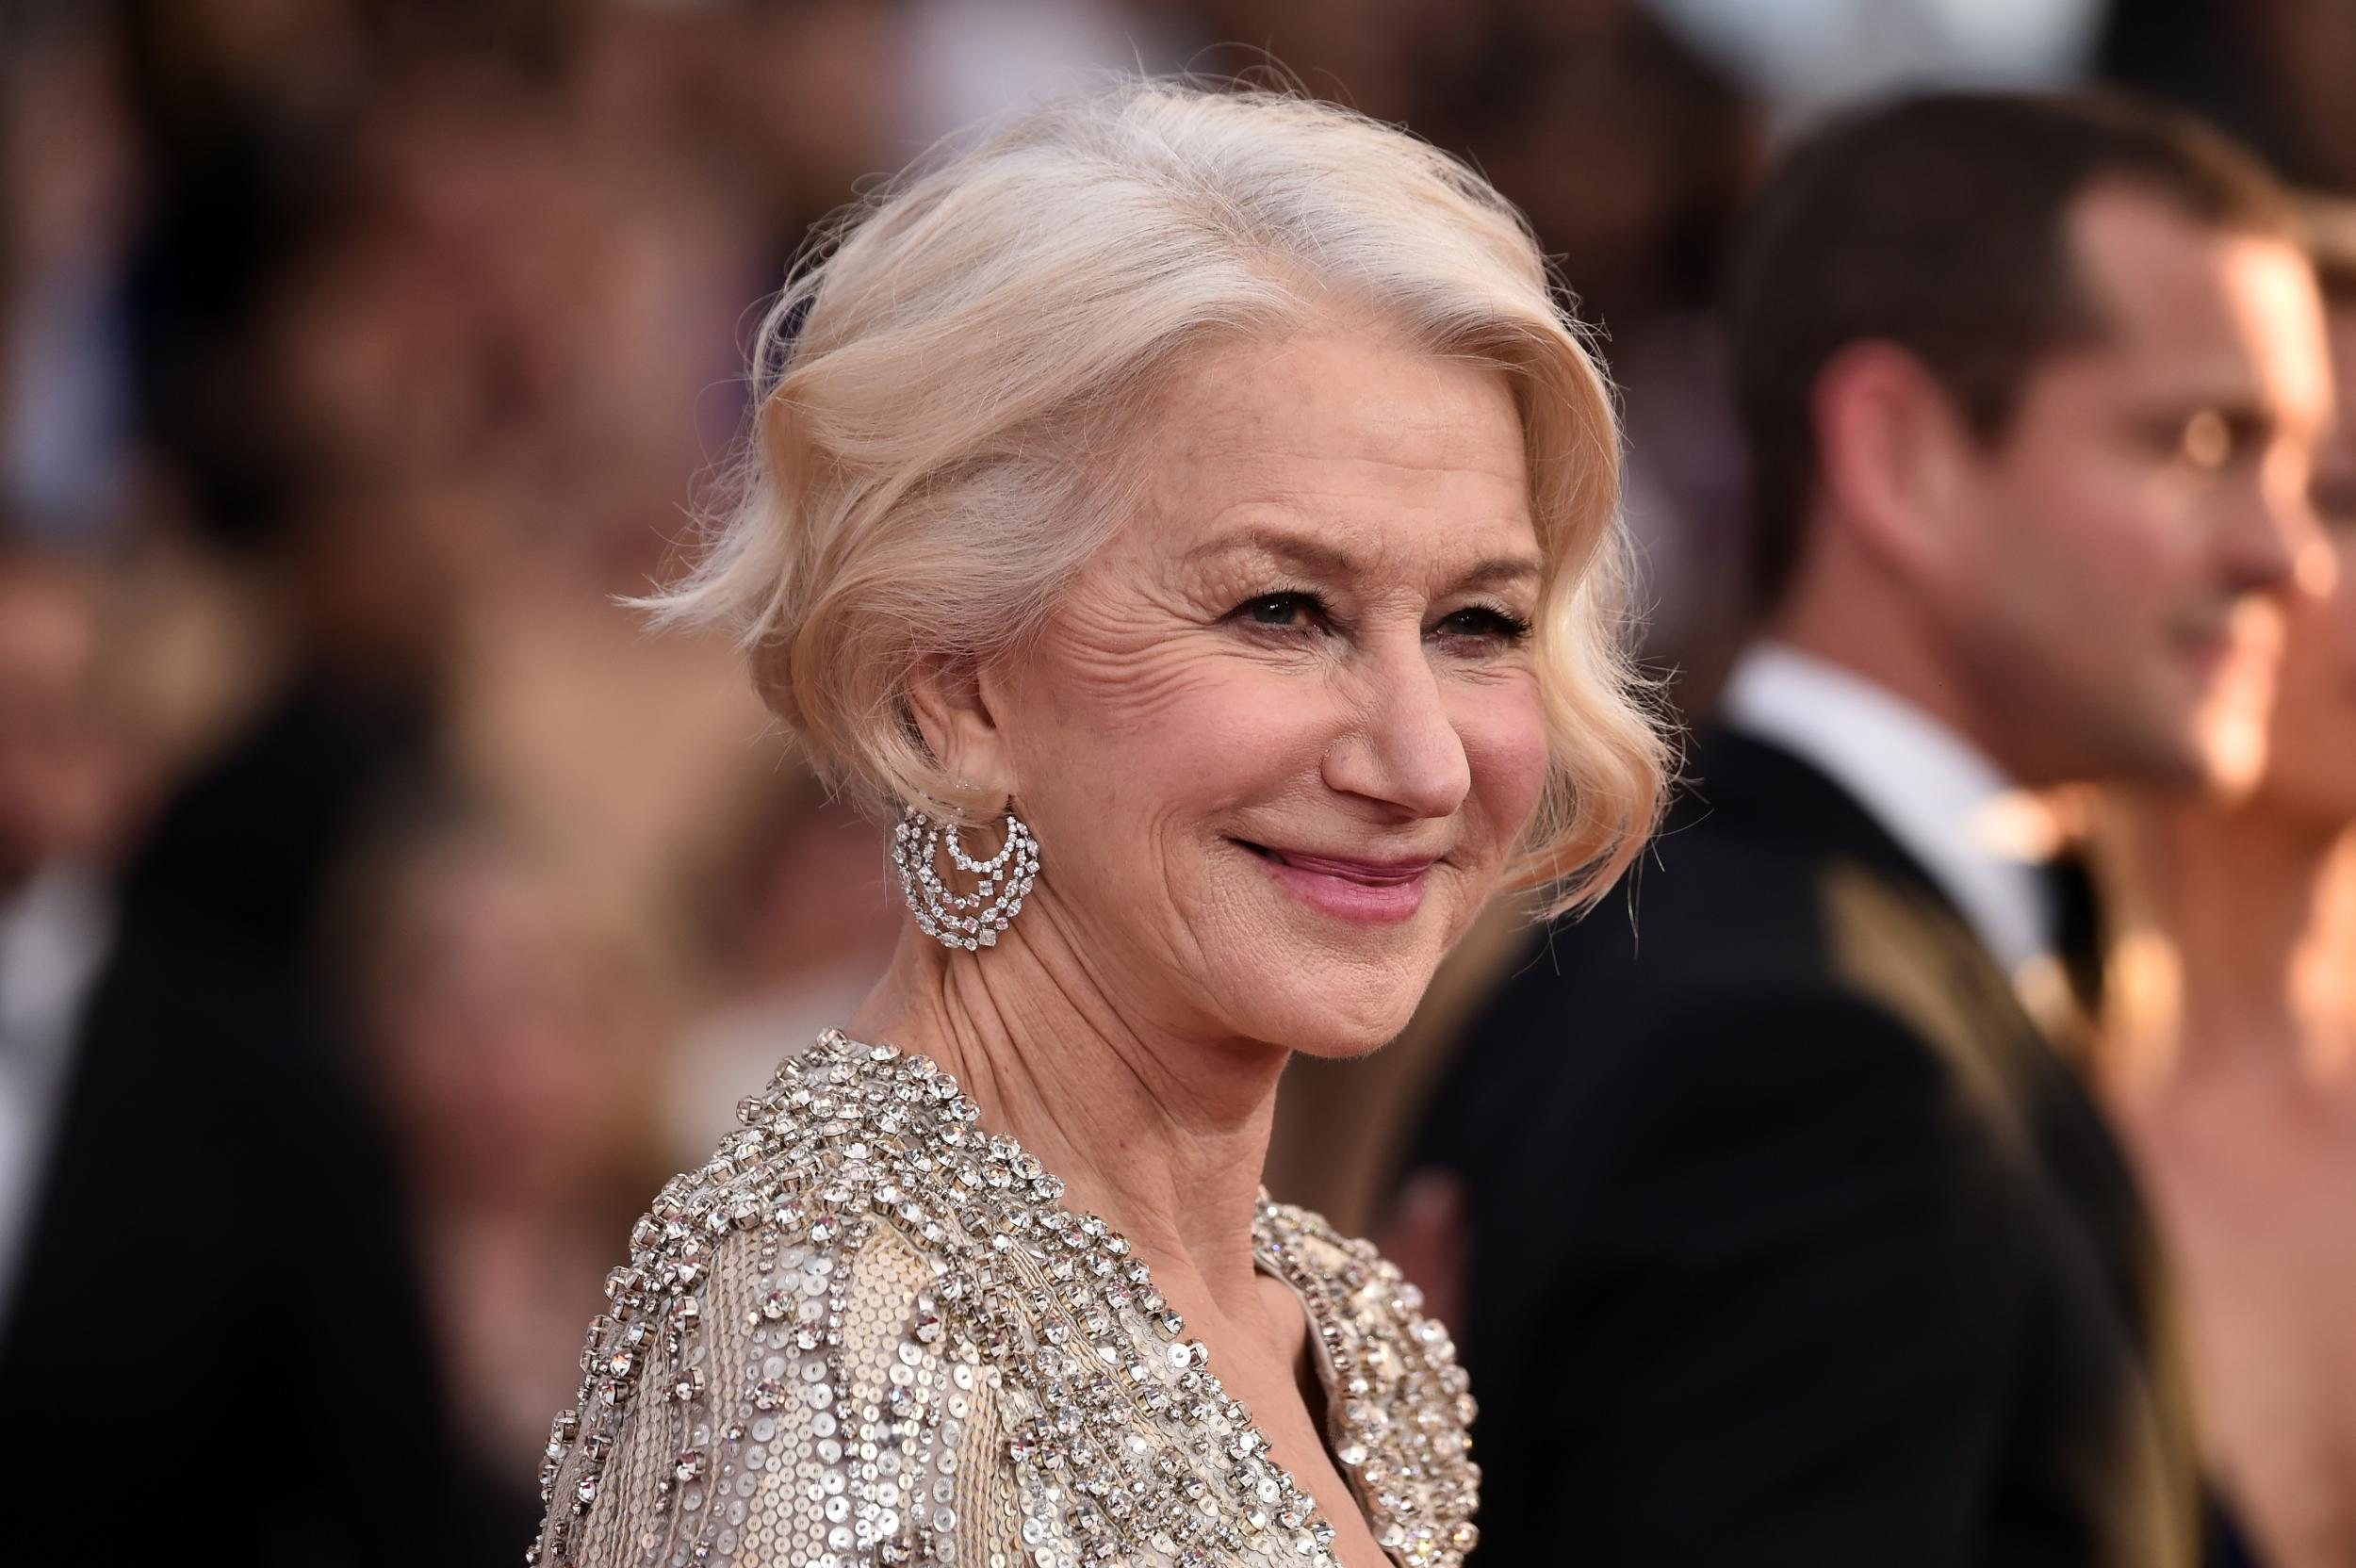 Helen Mirren explains why she hates the word 'beauty'